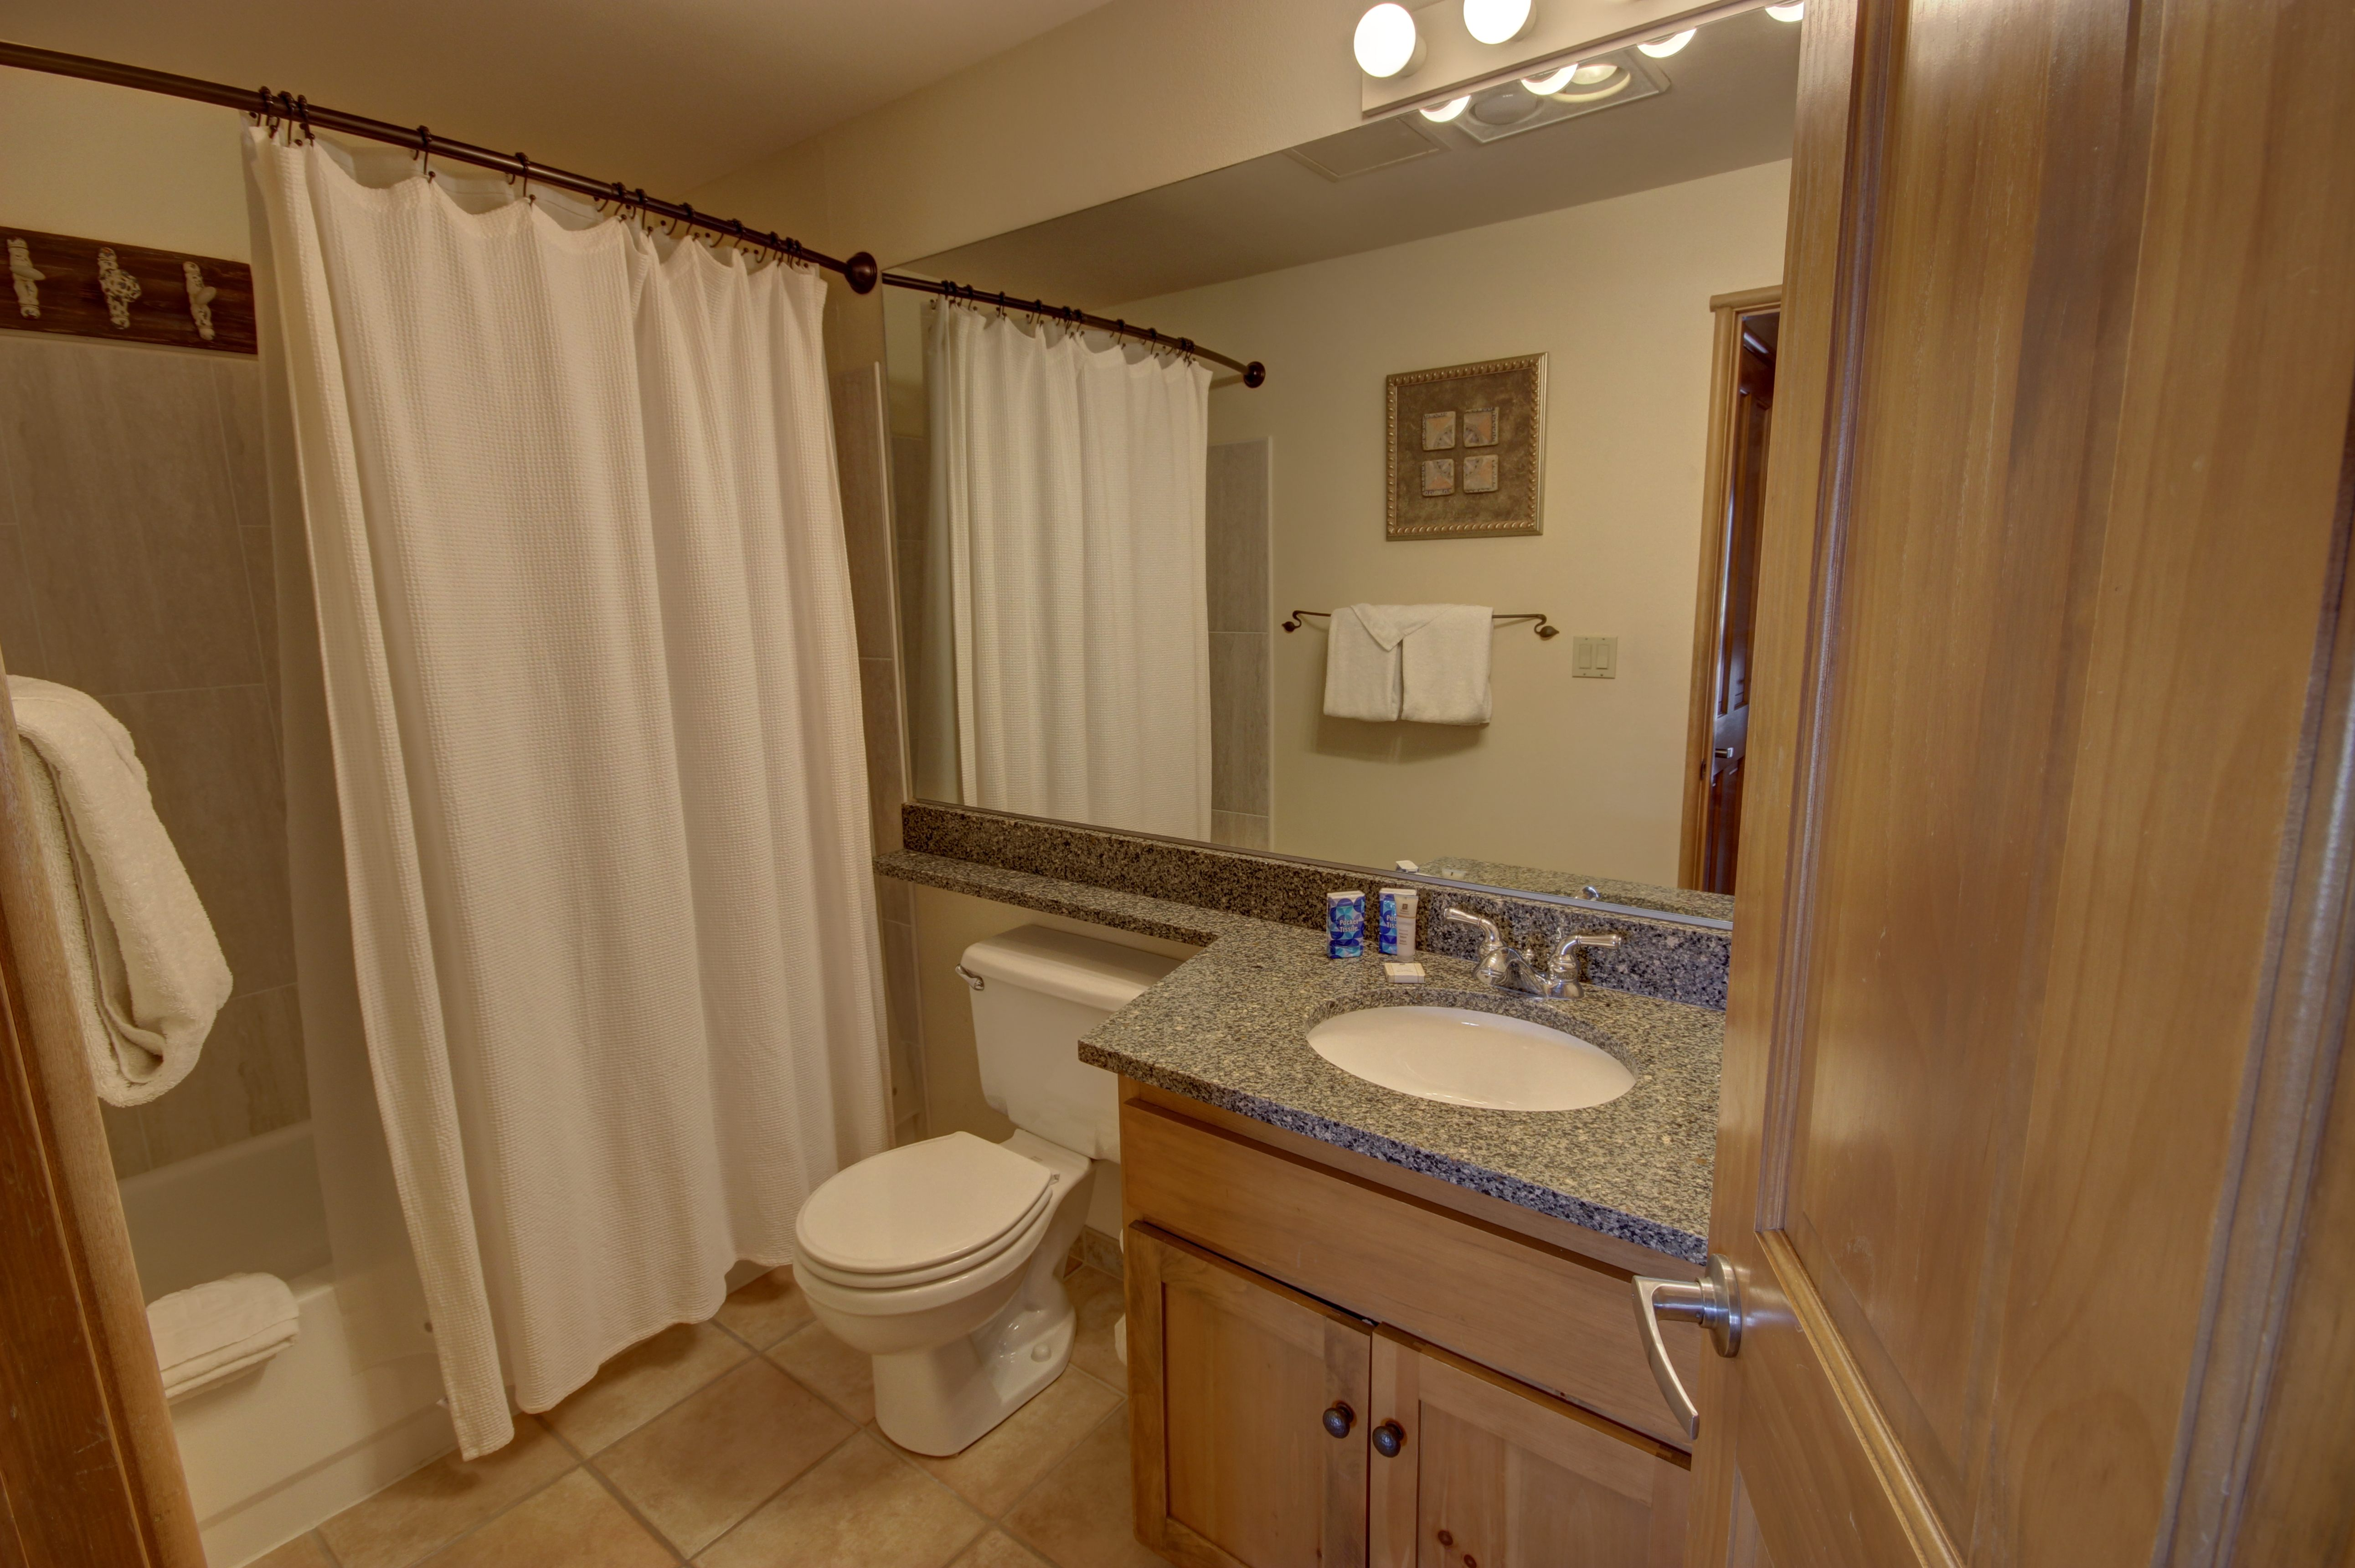 Bathroom with a granite counter top